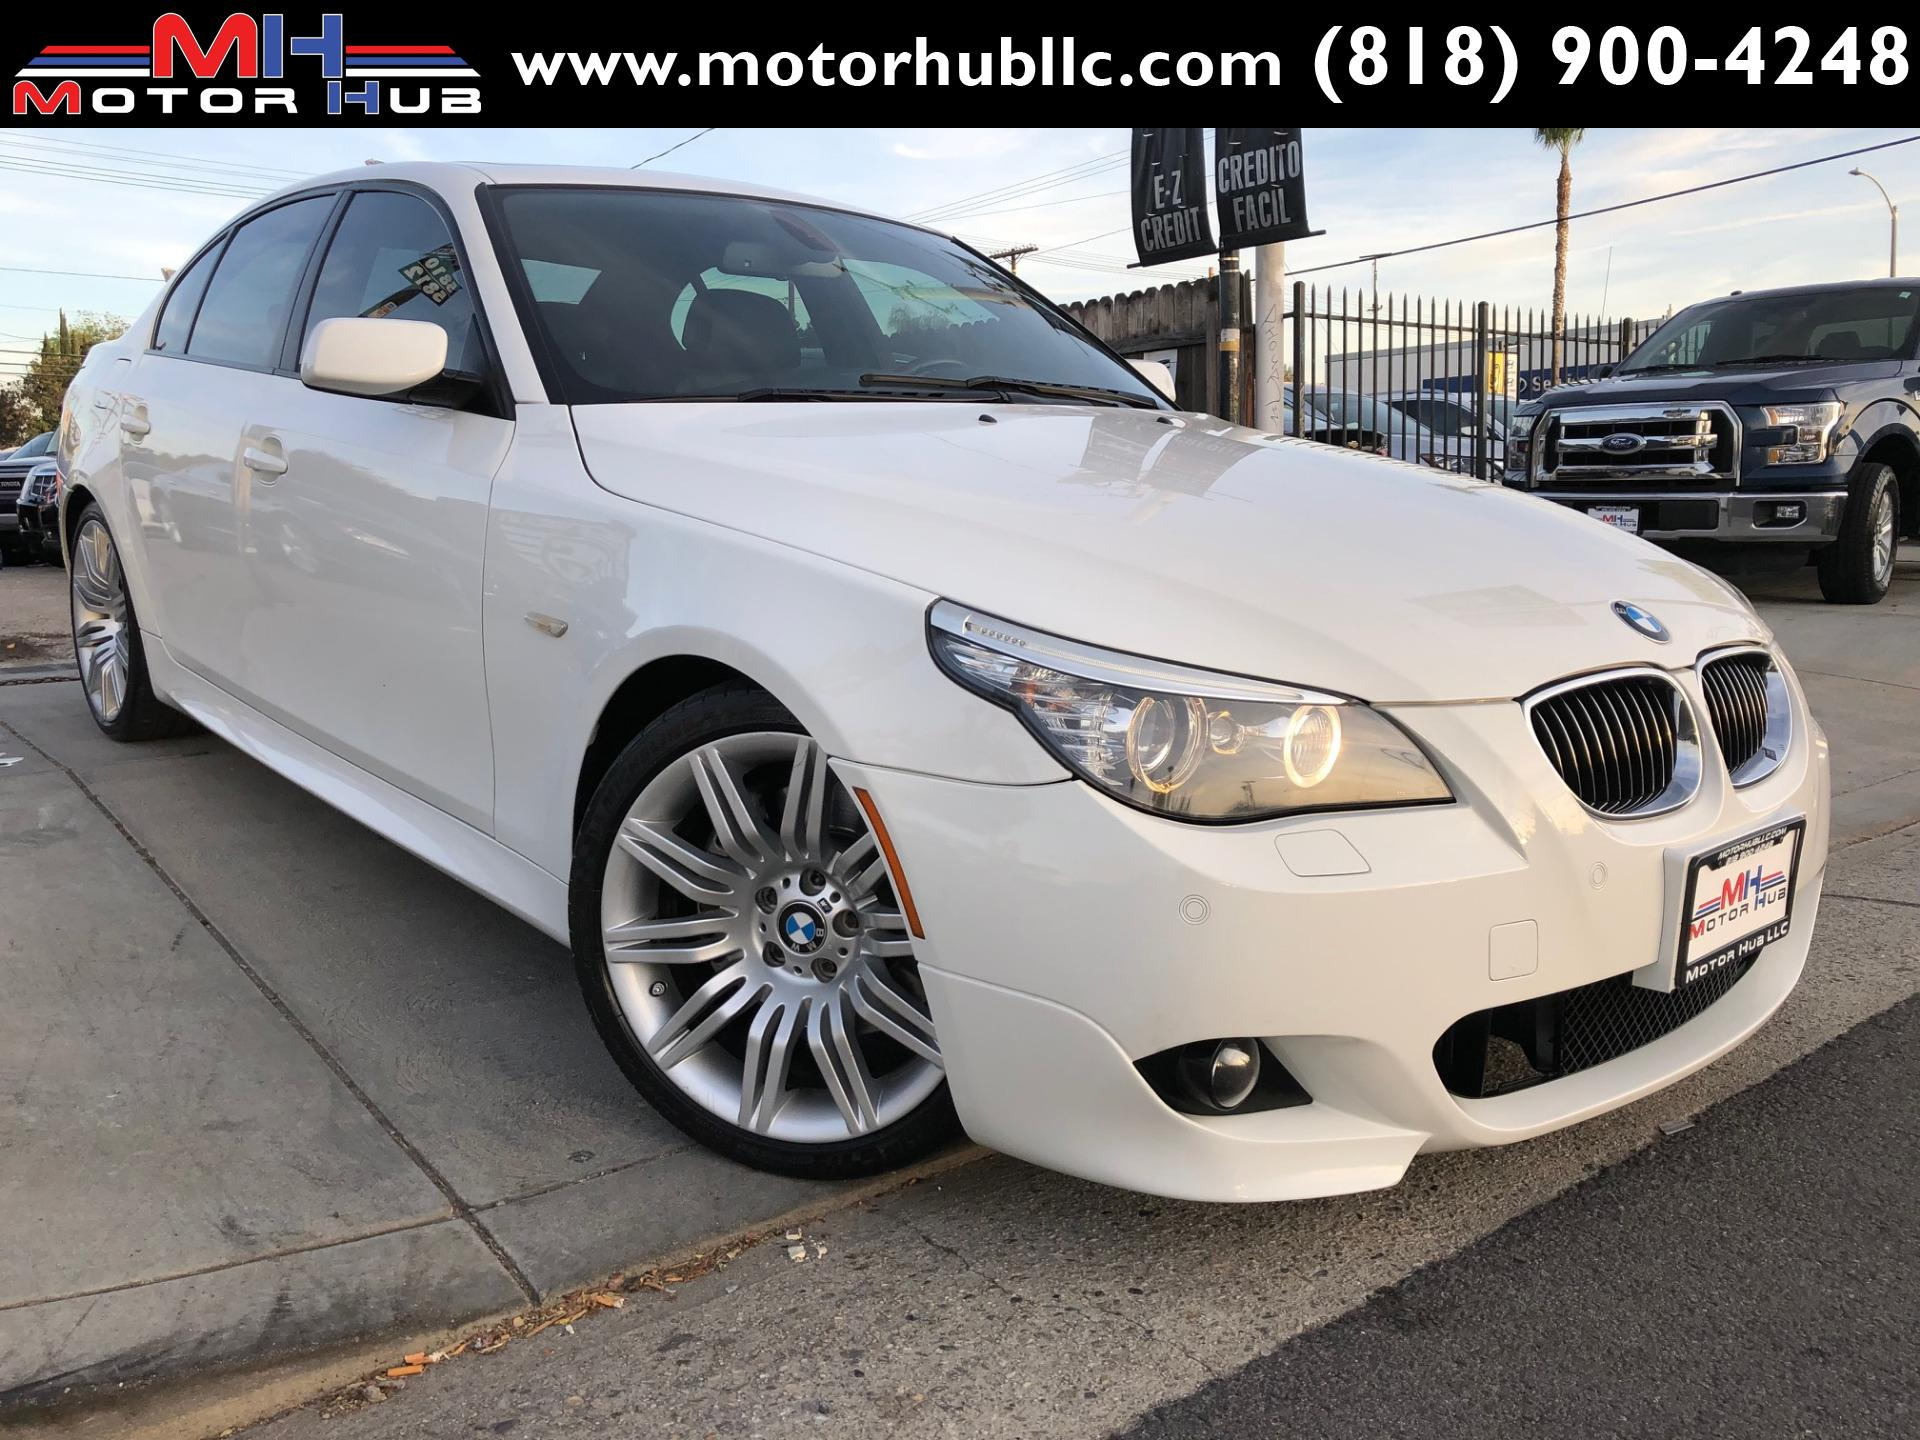 2010 Bmw 5 Series 550i Stock T56299 For Sale Near Van Nuys Ca Ca Bmw Dealer